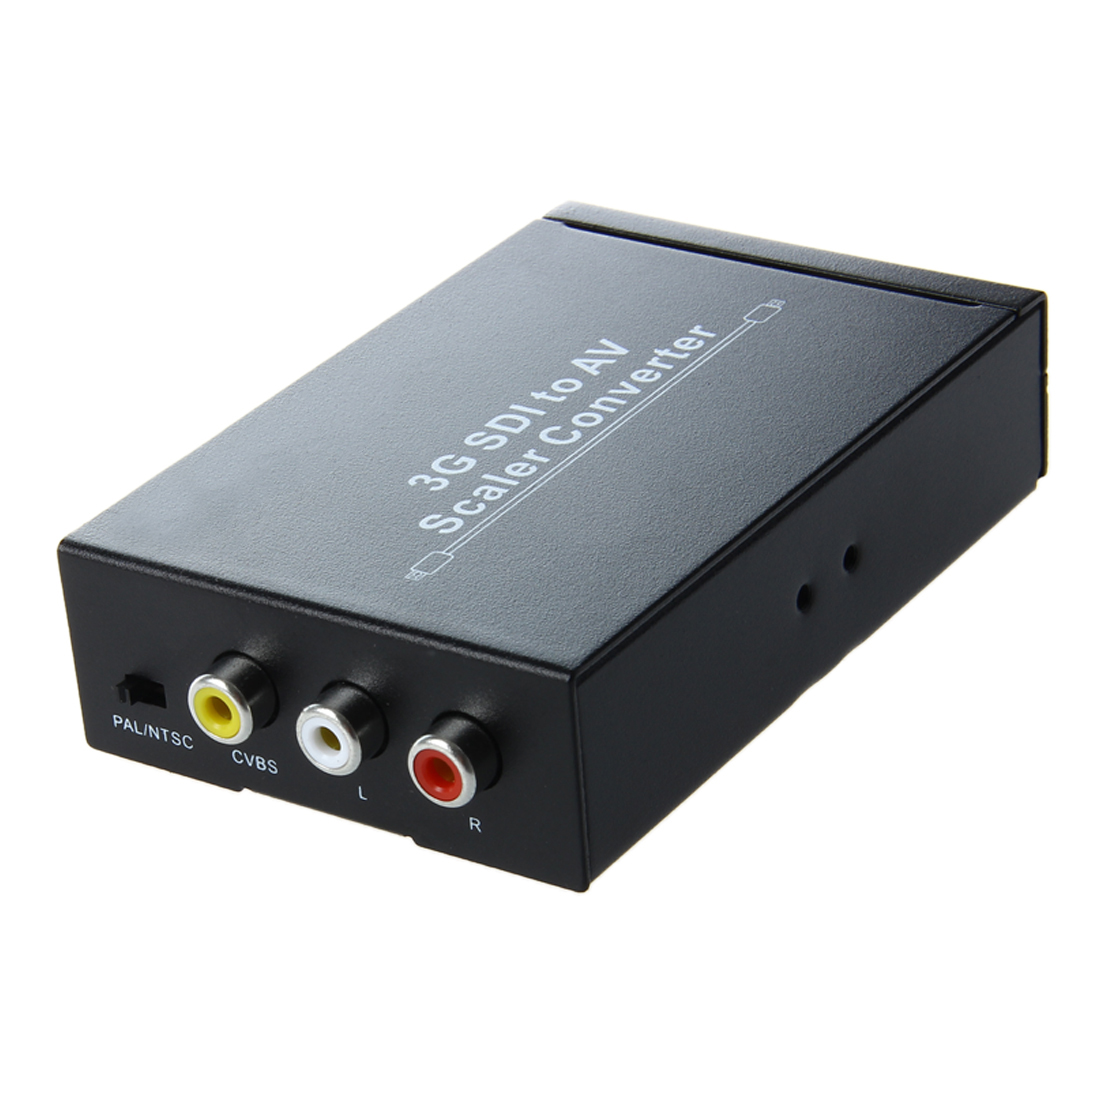 HDV-S007 Mini SD-SDI HD-SDI 3G-SDI to AV Video Converter Scaler 2.97Gbit Camera to CRT HDTV hdv s007 sdi to av scaler converter w cvbs sdi in sdi out rca black